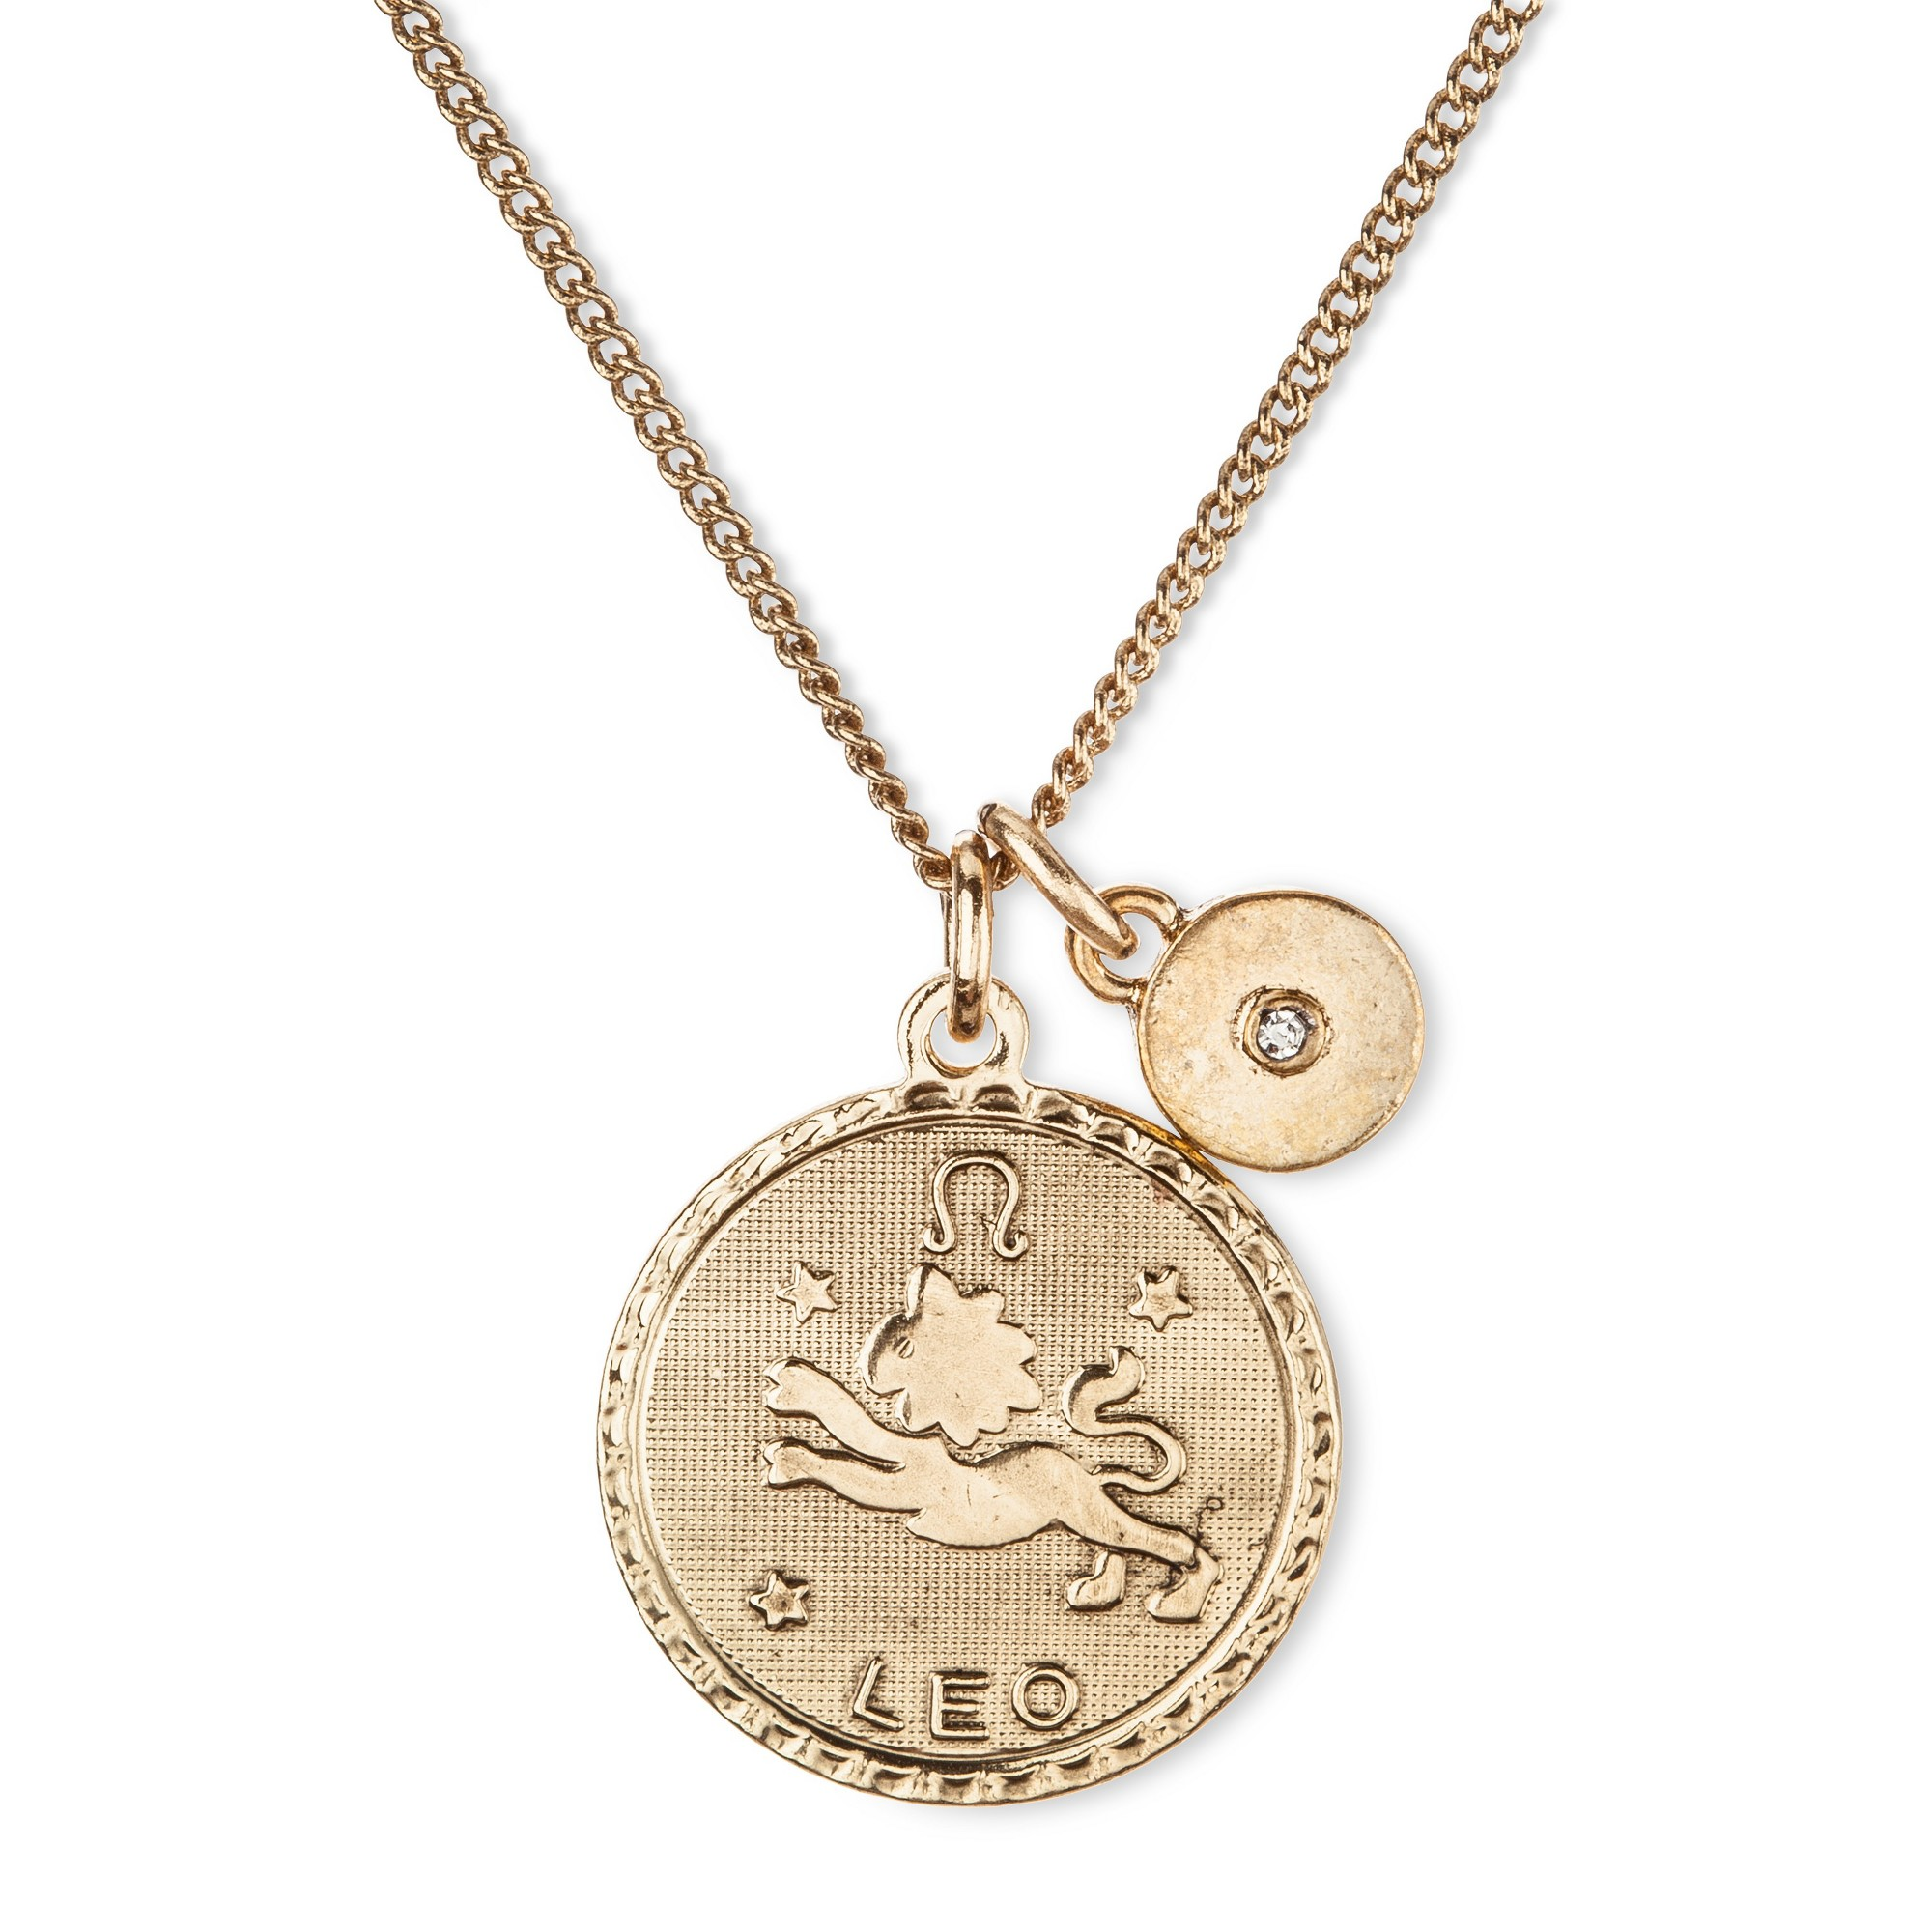 necklace diamonds no libra zodiac virgo all leo products scorpio silver constellation